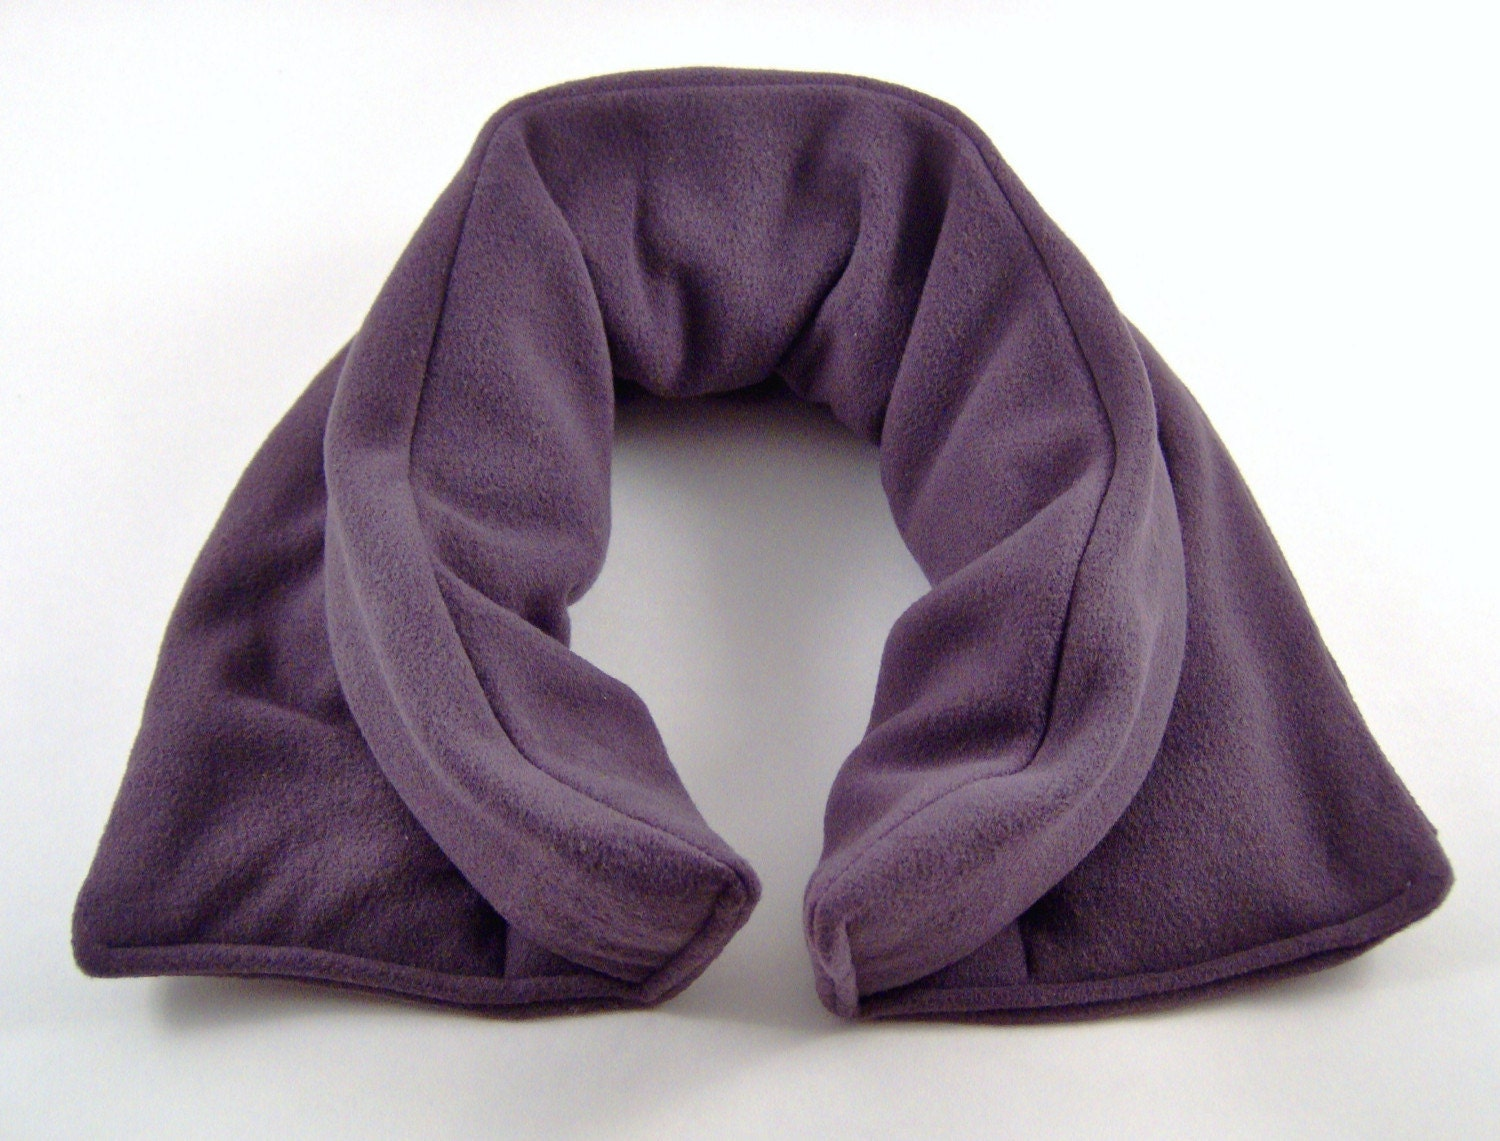 Dark Plum Microfleece Therapy Pack from theferriswheels